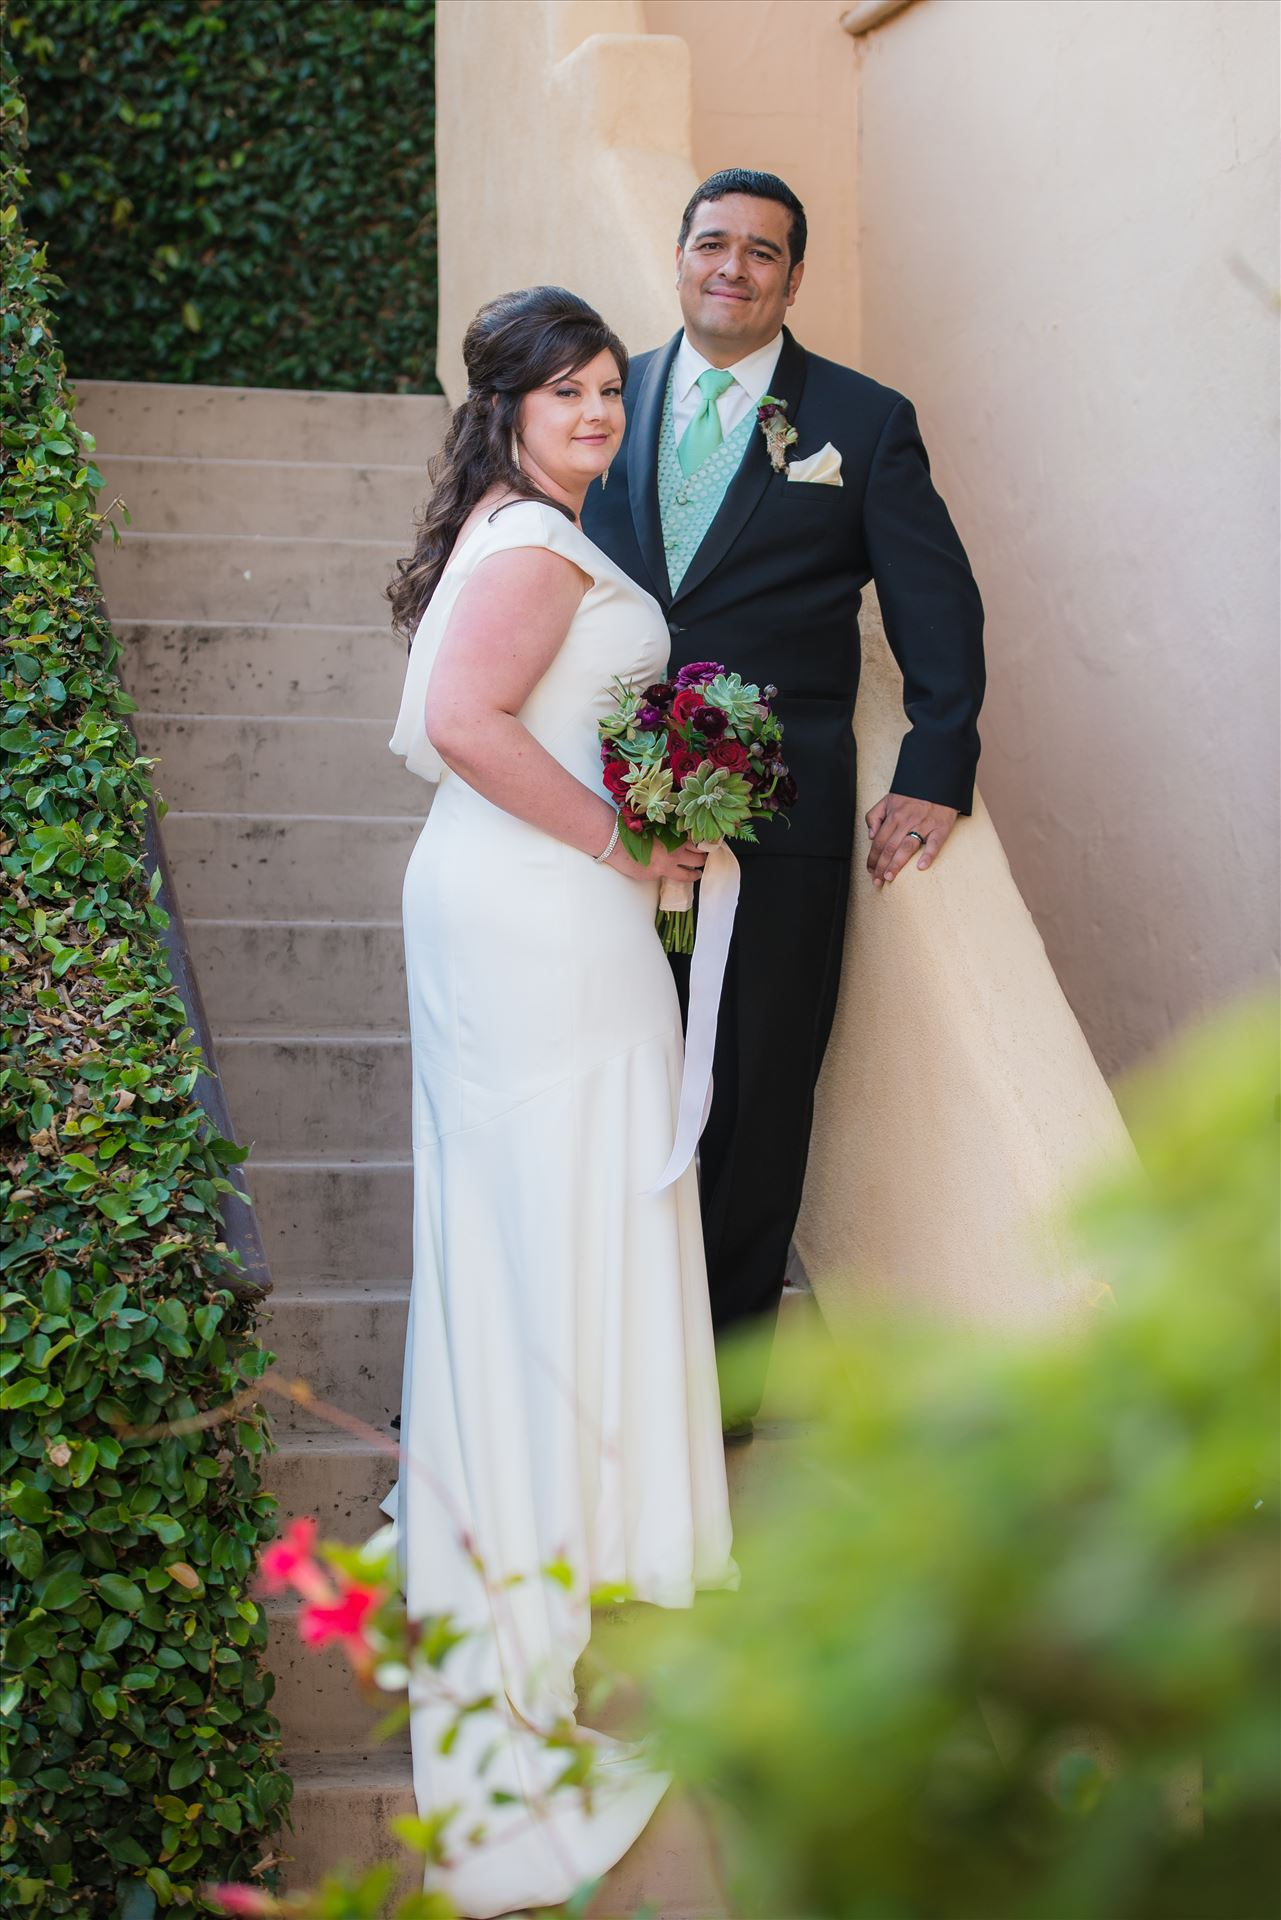 Mary and Alejandro 16 - Wedding photography at the Historic Santa Maria Inn in Santa Maria, California by Mirror's Edge Photography. Bride and Groom on the Ivy Staircase after Ceremony. by Sarah Williams